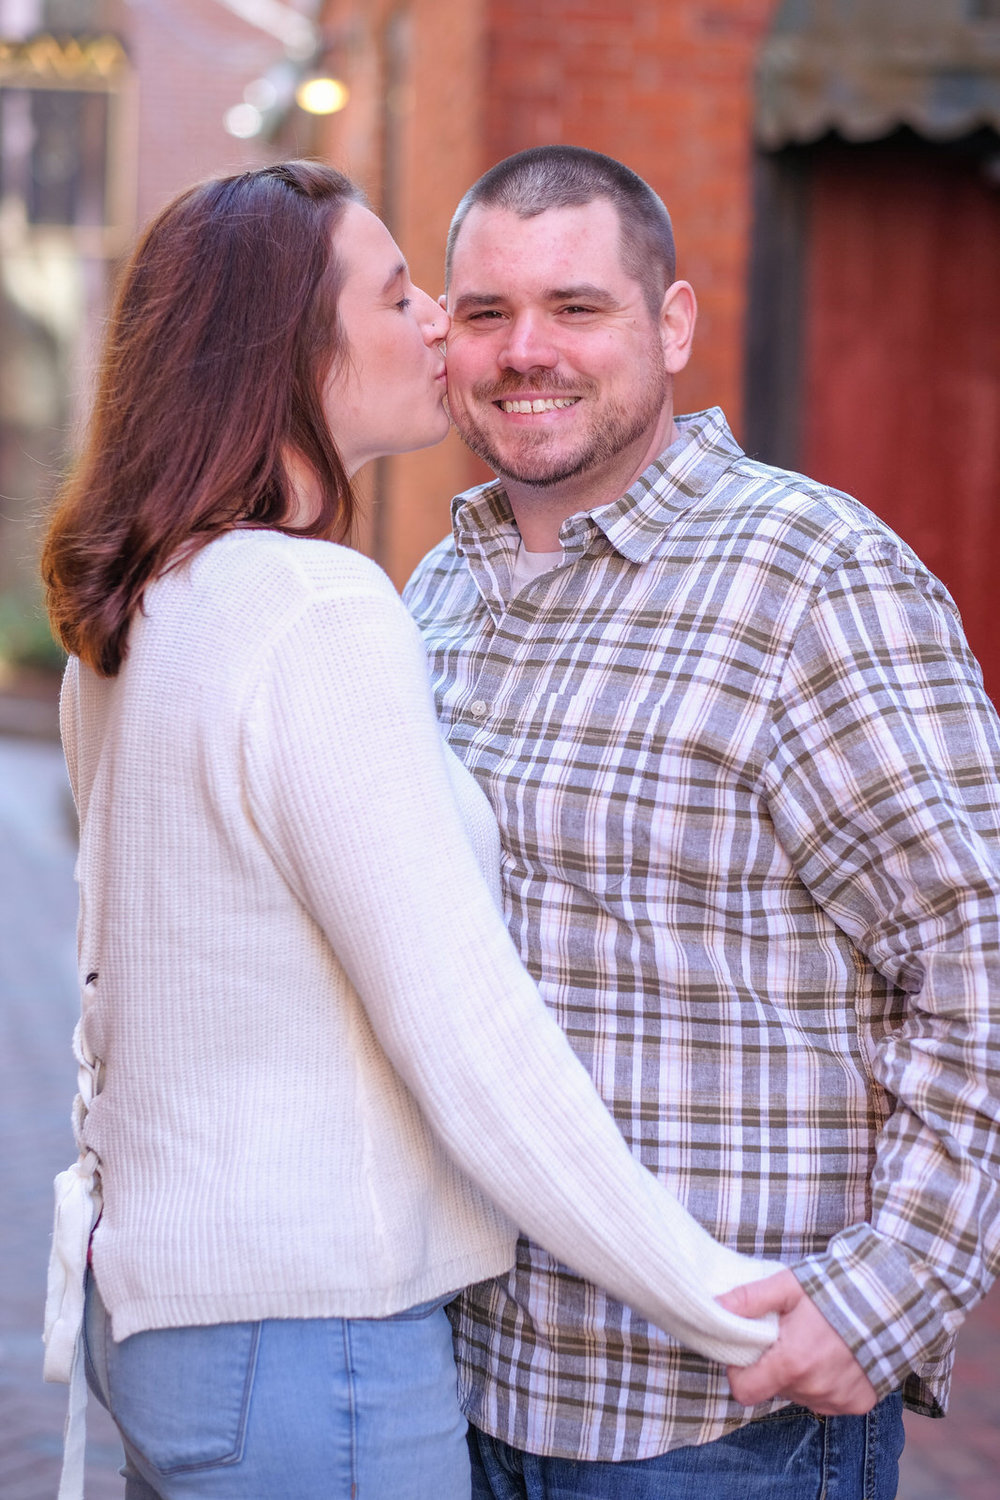 candid-portsmouth-nh-engagement-photography-41.jpg